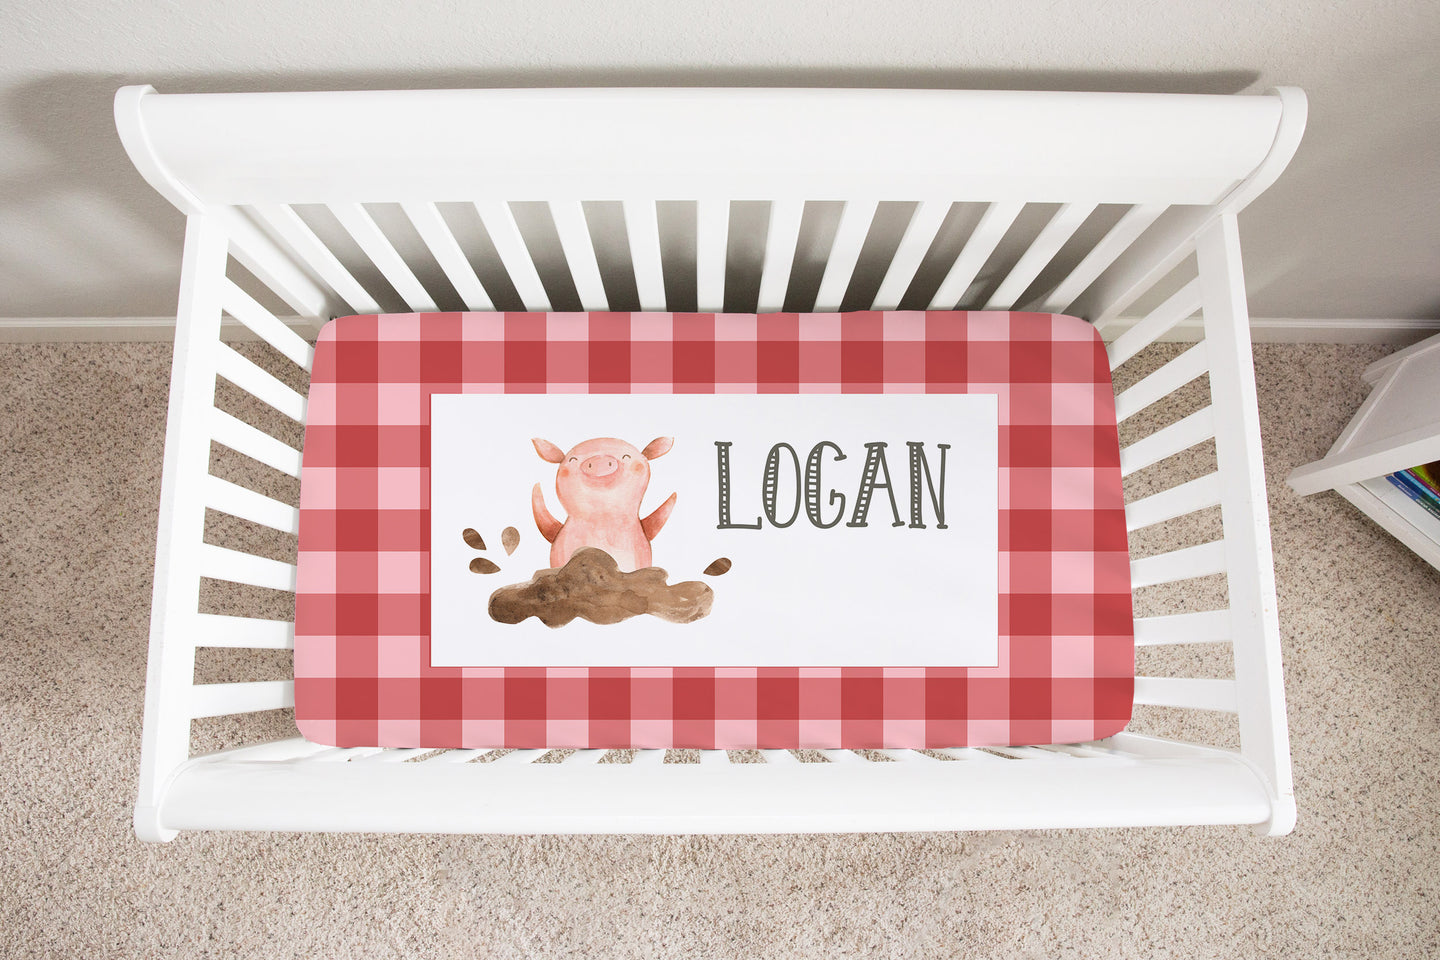 Logan's Farm Red Plaid Pig Personalized Minky Crib Sheet, Farm Nursery Bedding